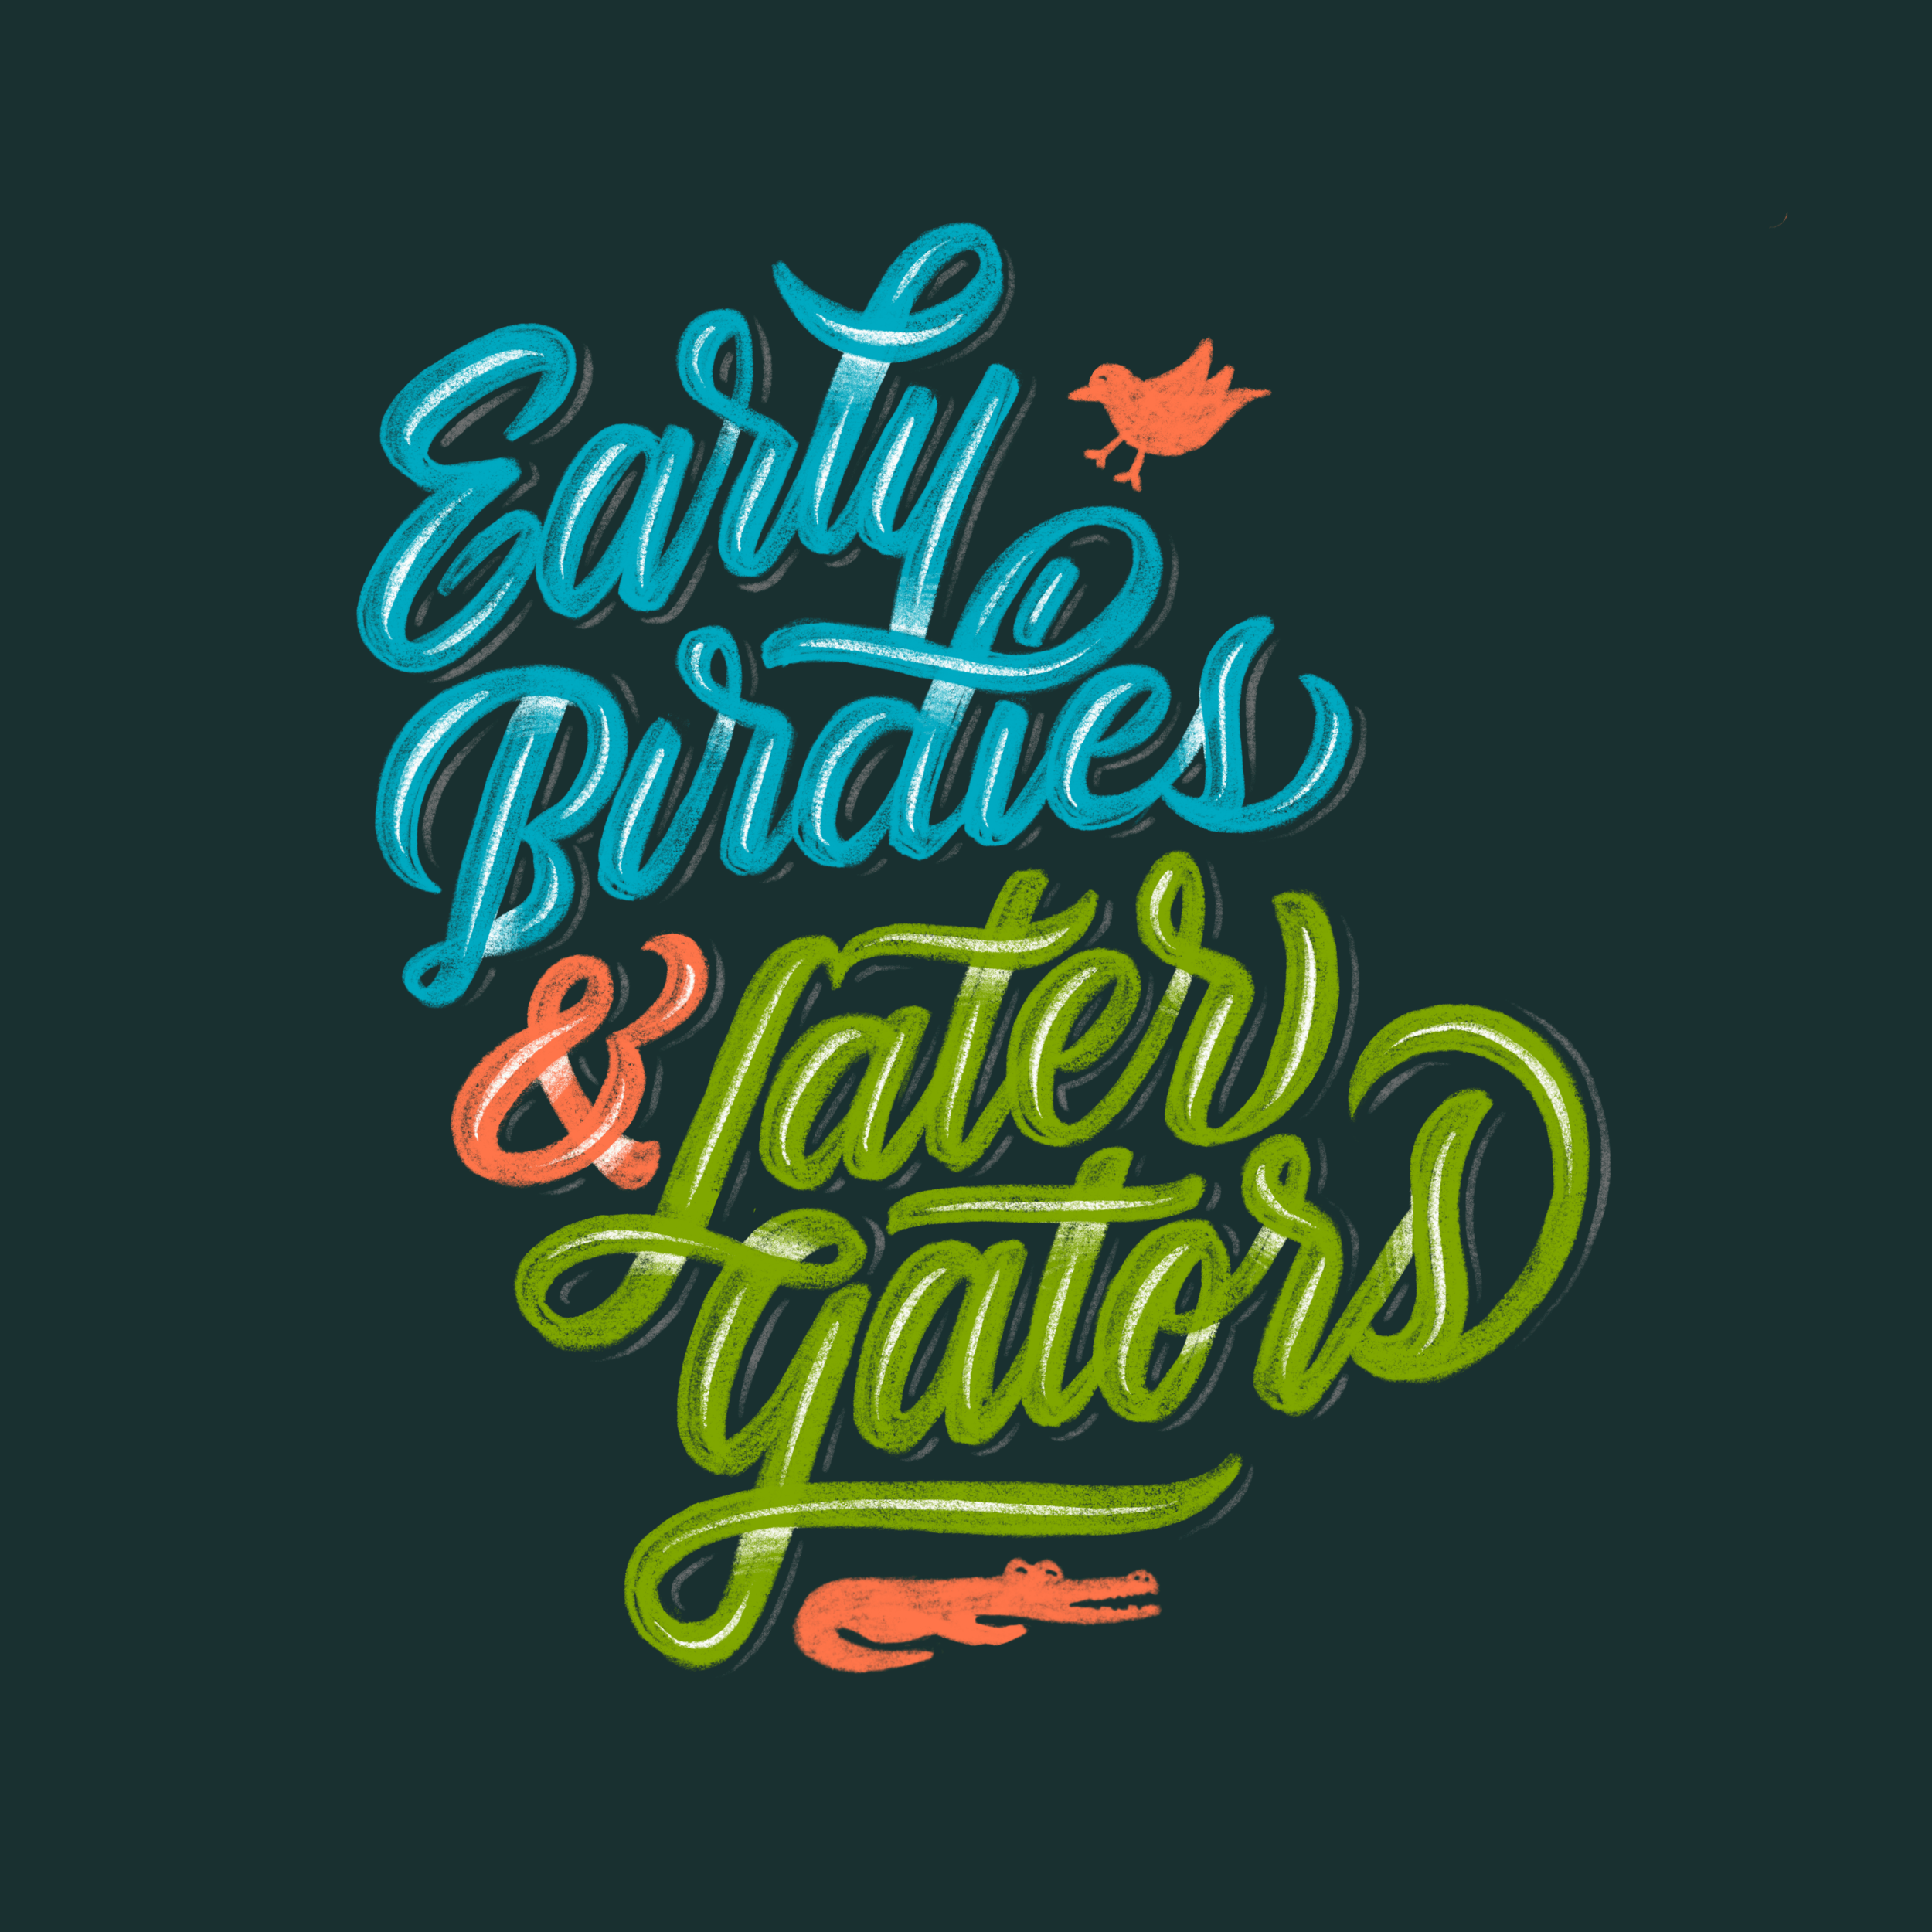 early_birdies_later_gators_procreate copy.png